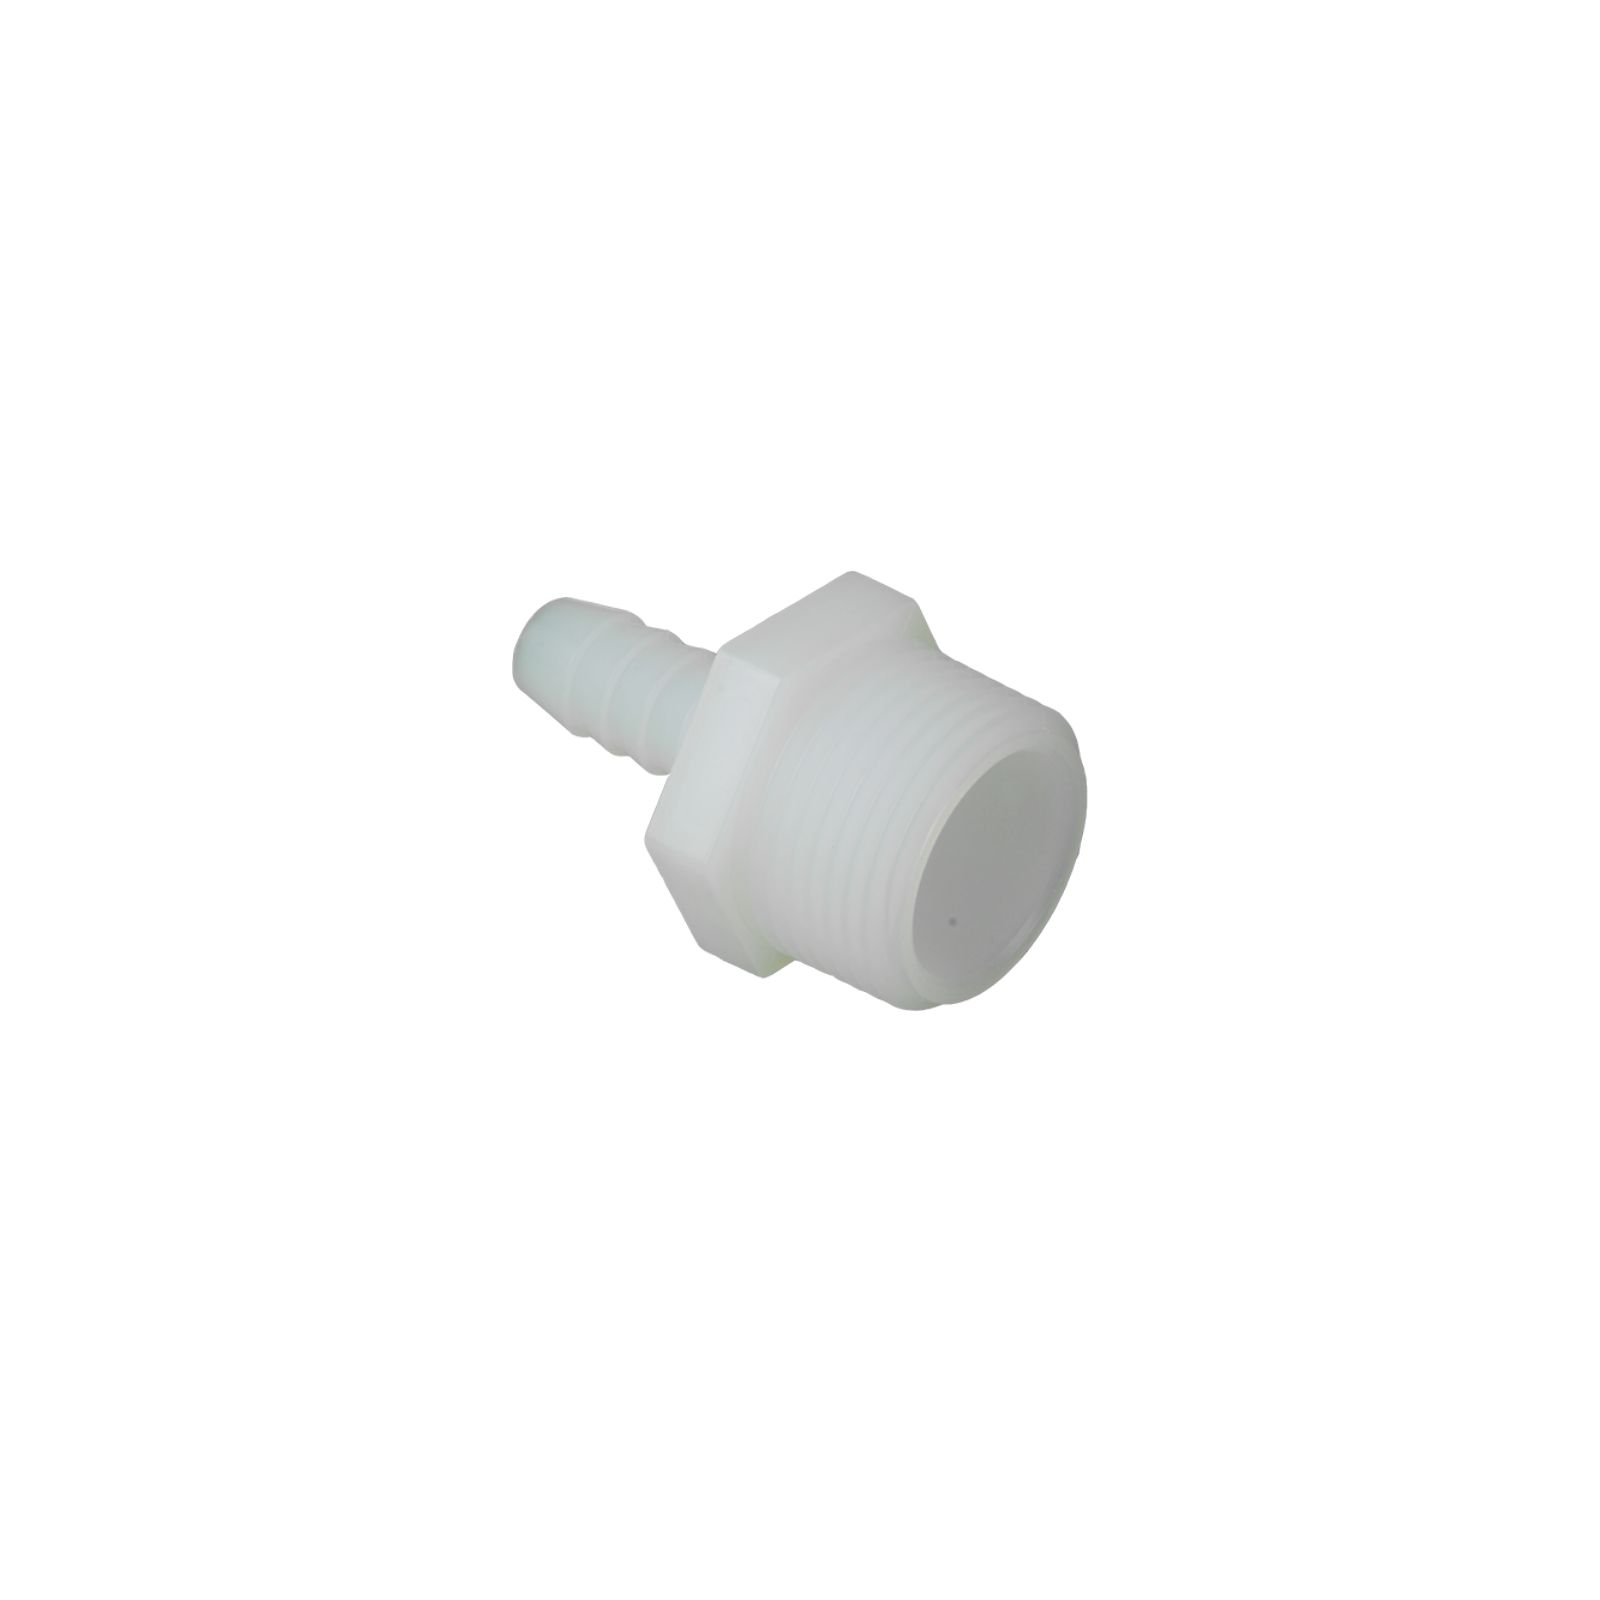 "DiversiTech 701-043 - Nylon Male Adapter (3/8"" Barb X 3/4"" MIPT), Pack Of 2"